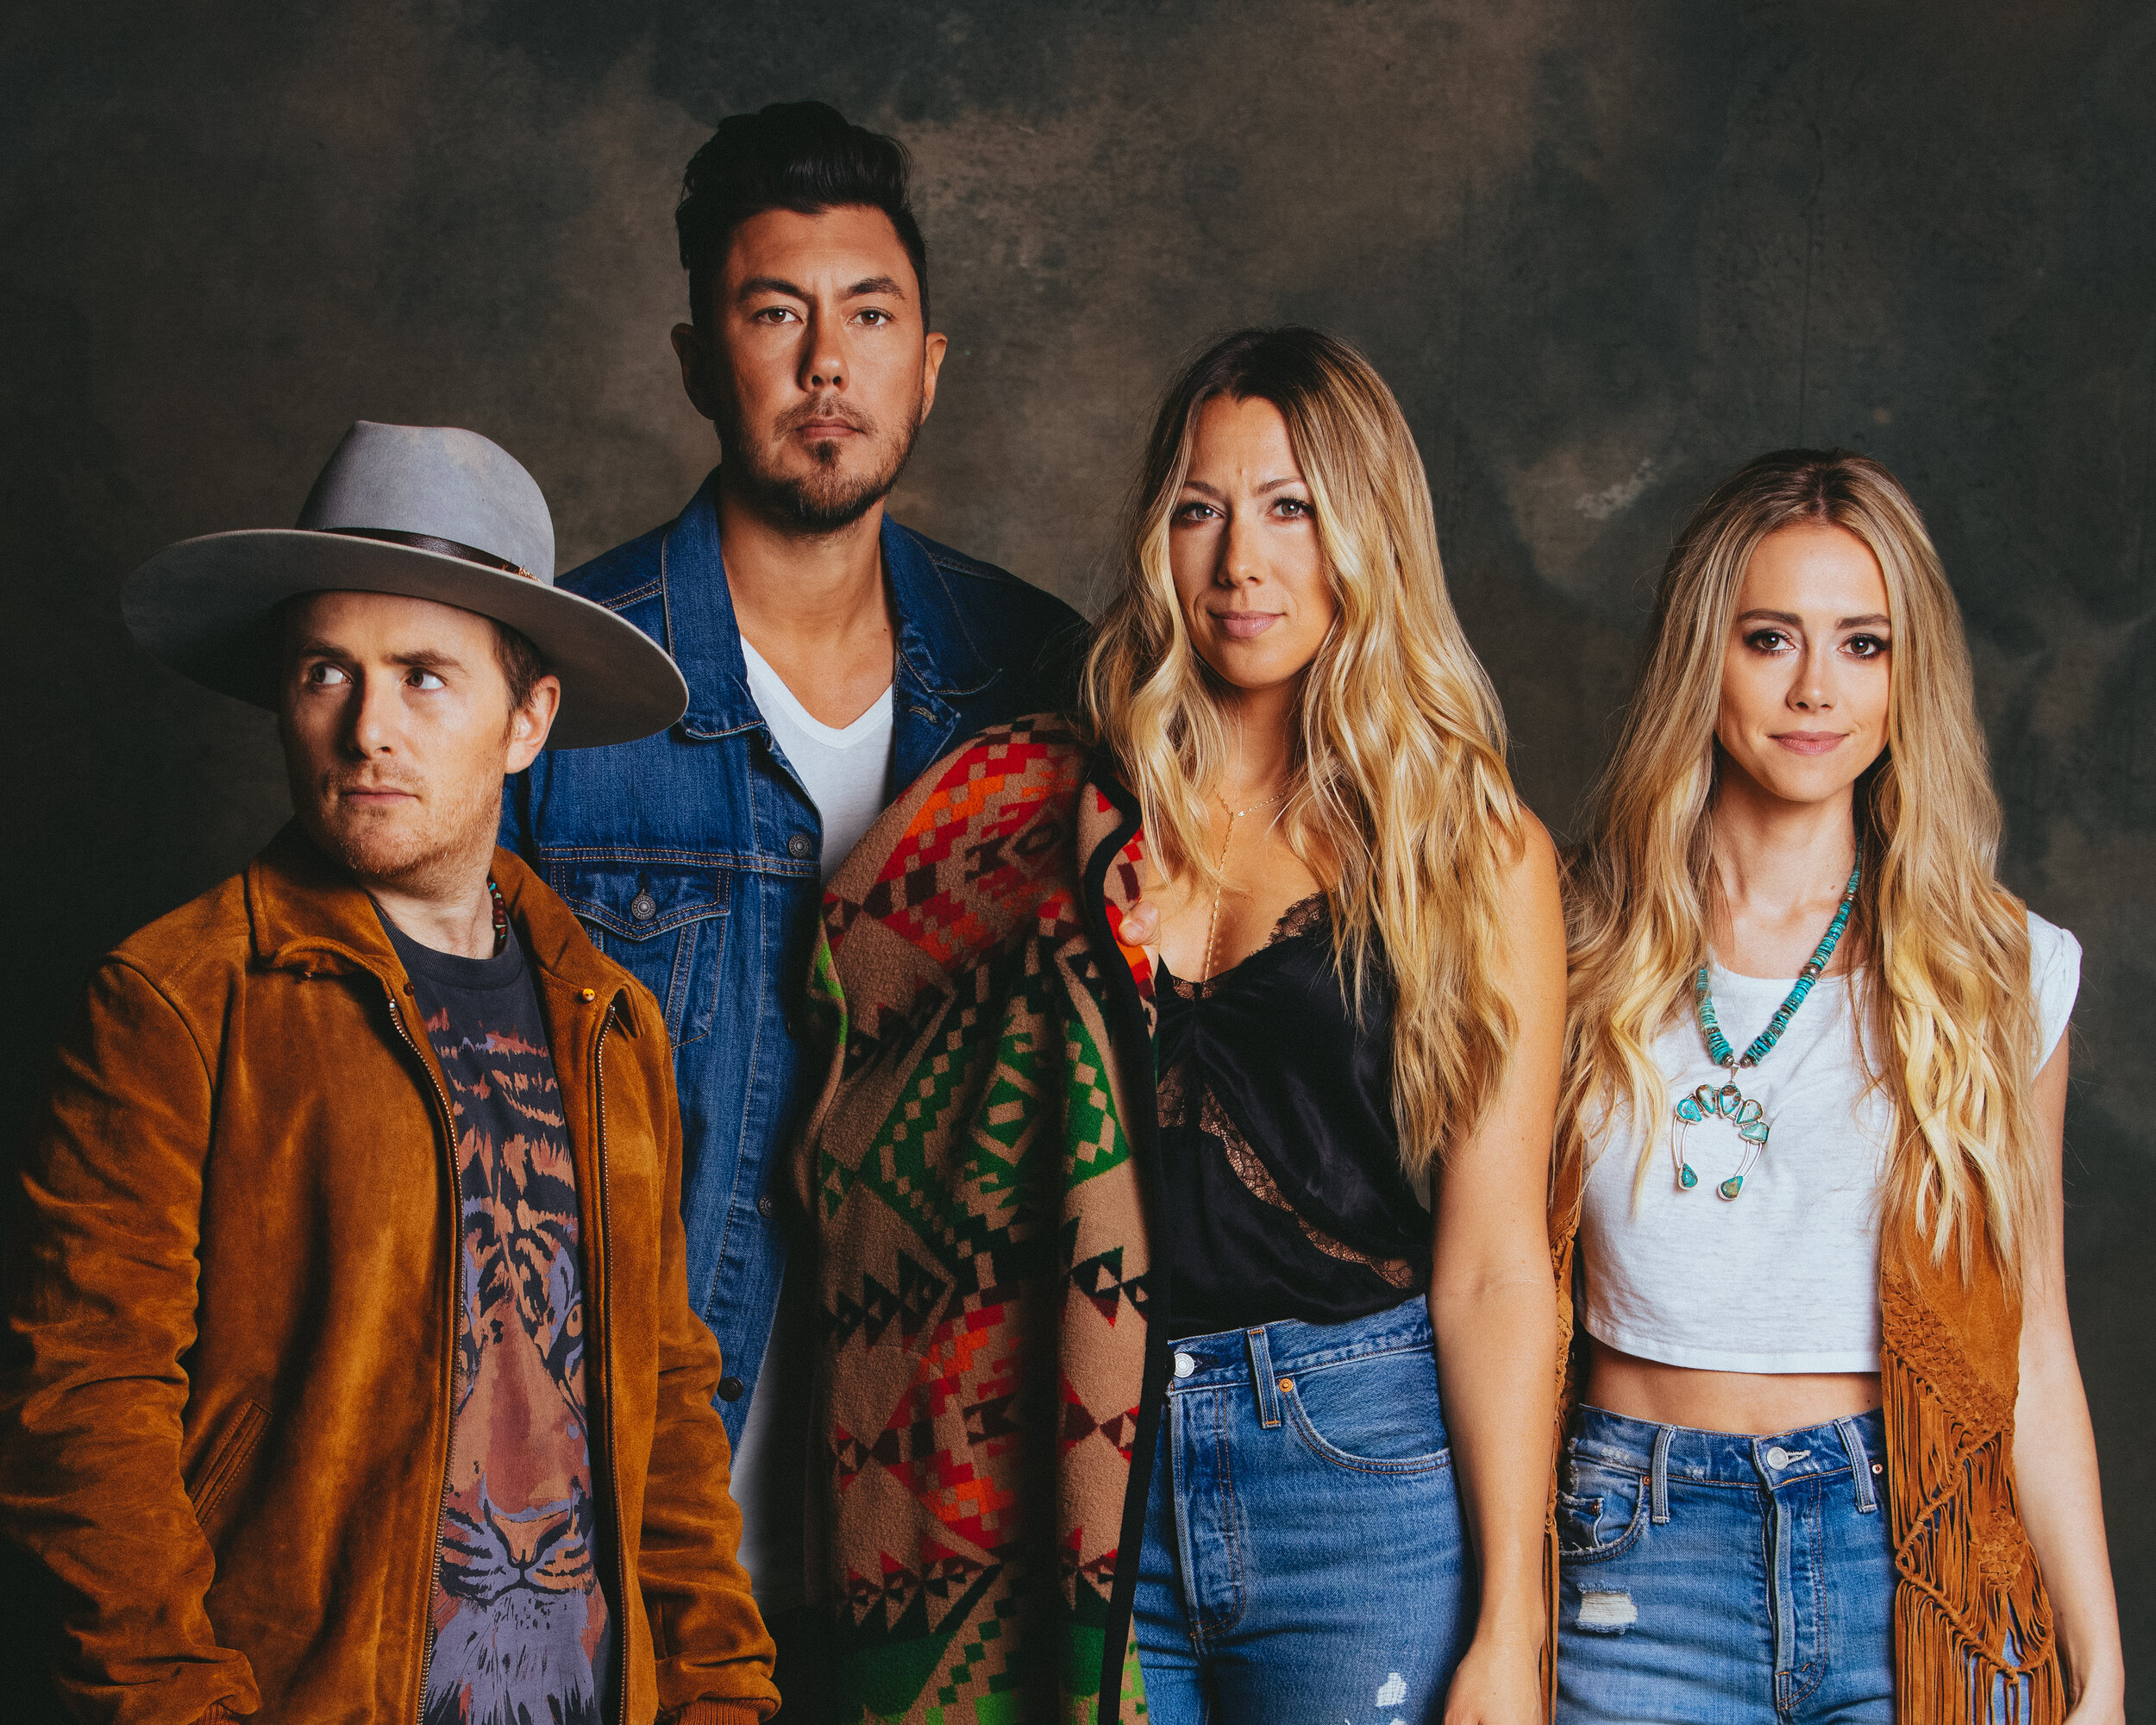 COLBIE CAILLAT, JUSTIN YOUNG, NELLY JOY, & JASON REEVES